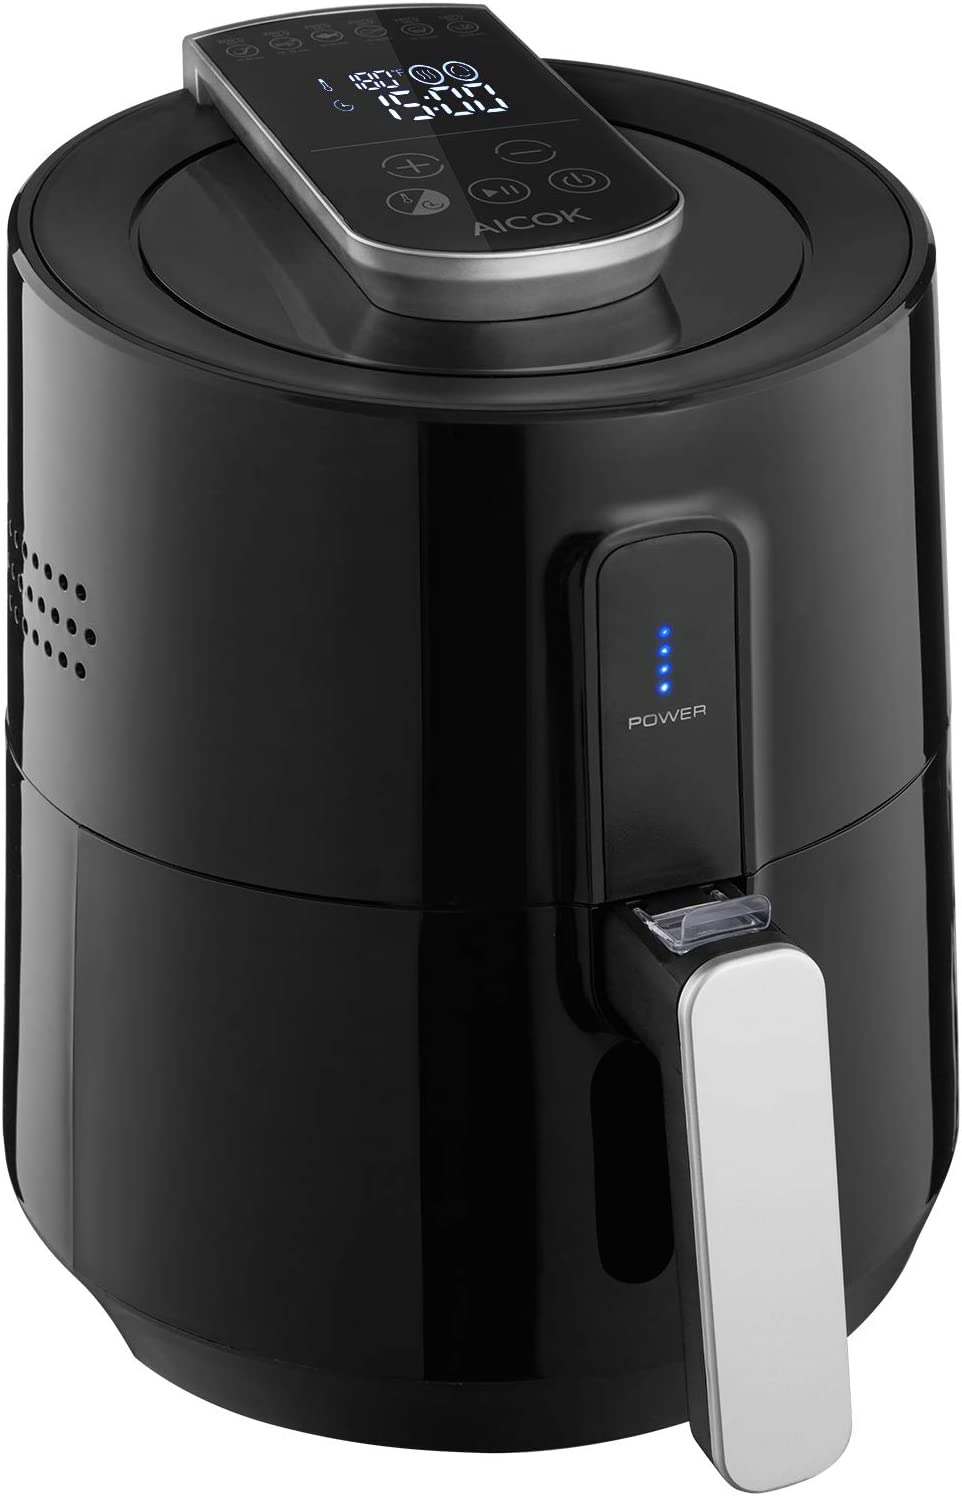 Aicok Air Fryer, Hot Airfryer with Time & Temperature Control, Digital Touchscreen, Oil Less Fryer Healthy Food & Fast Cooking, 1300W Rapid Air Circulation, Detachable Fry Basket …